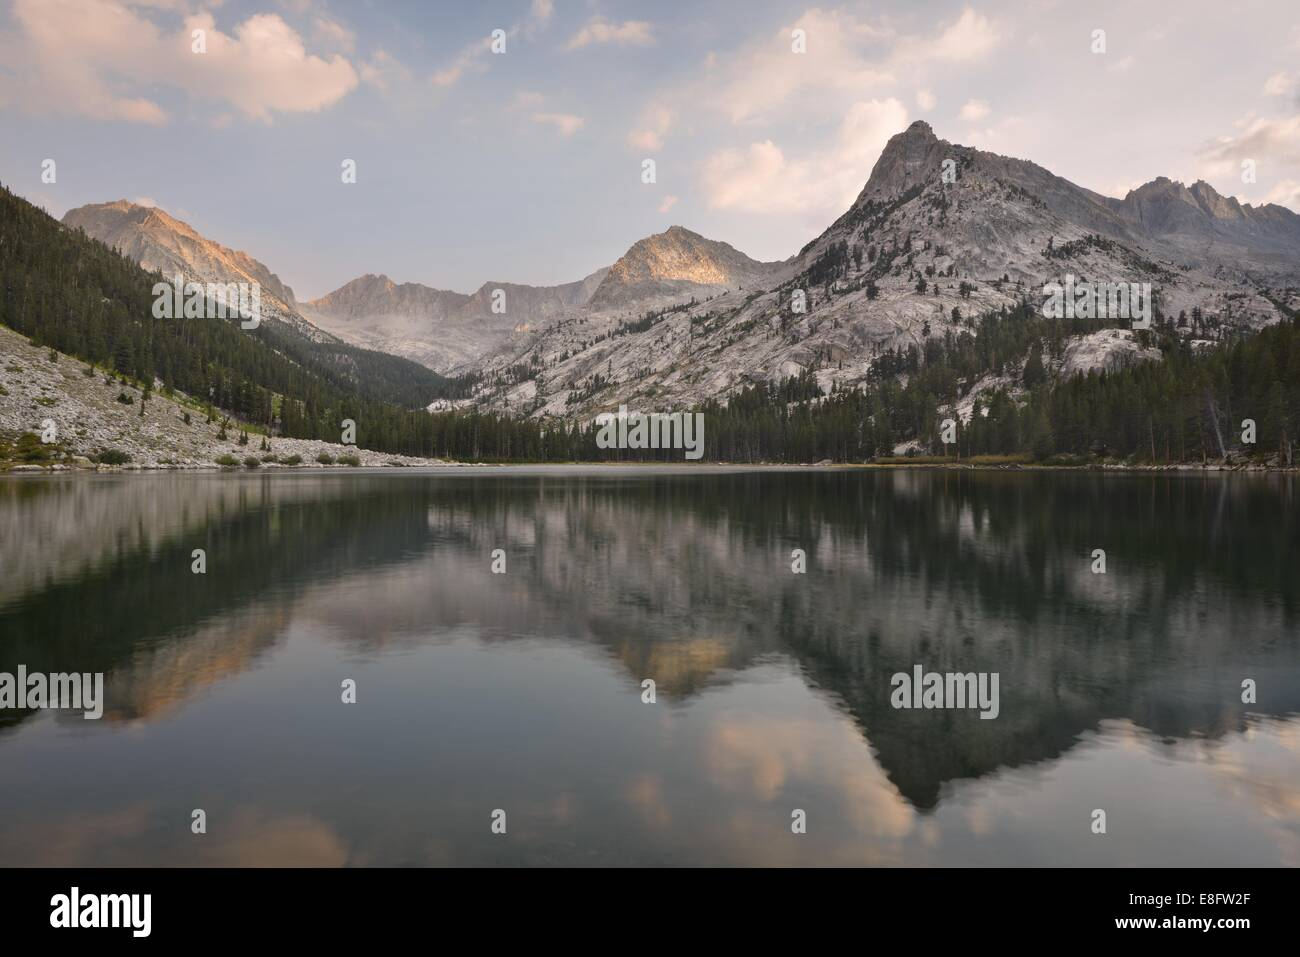 USA, California, Kings Canyon National Park, Reflections in East Lake - Stock Image